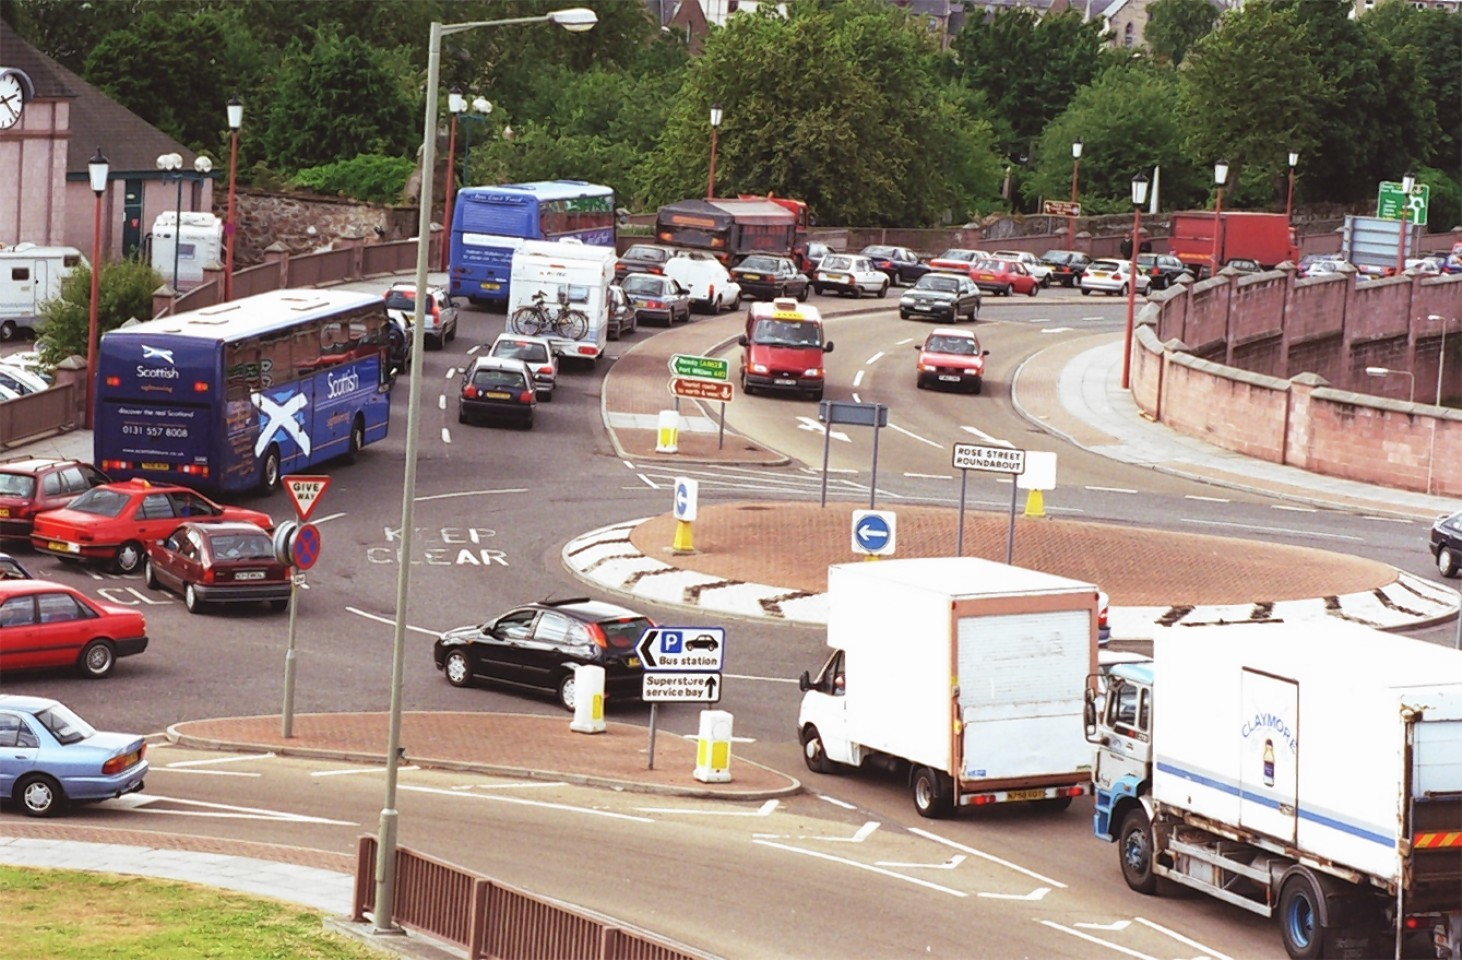 Rose Street roundabout